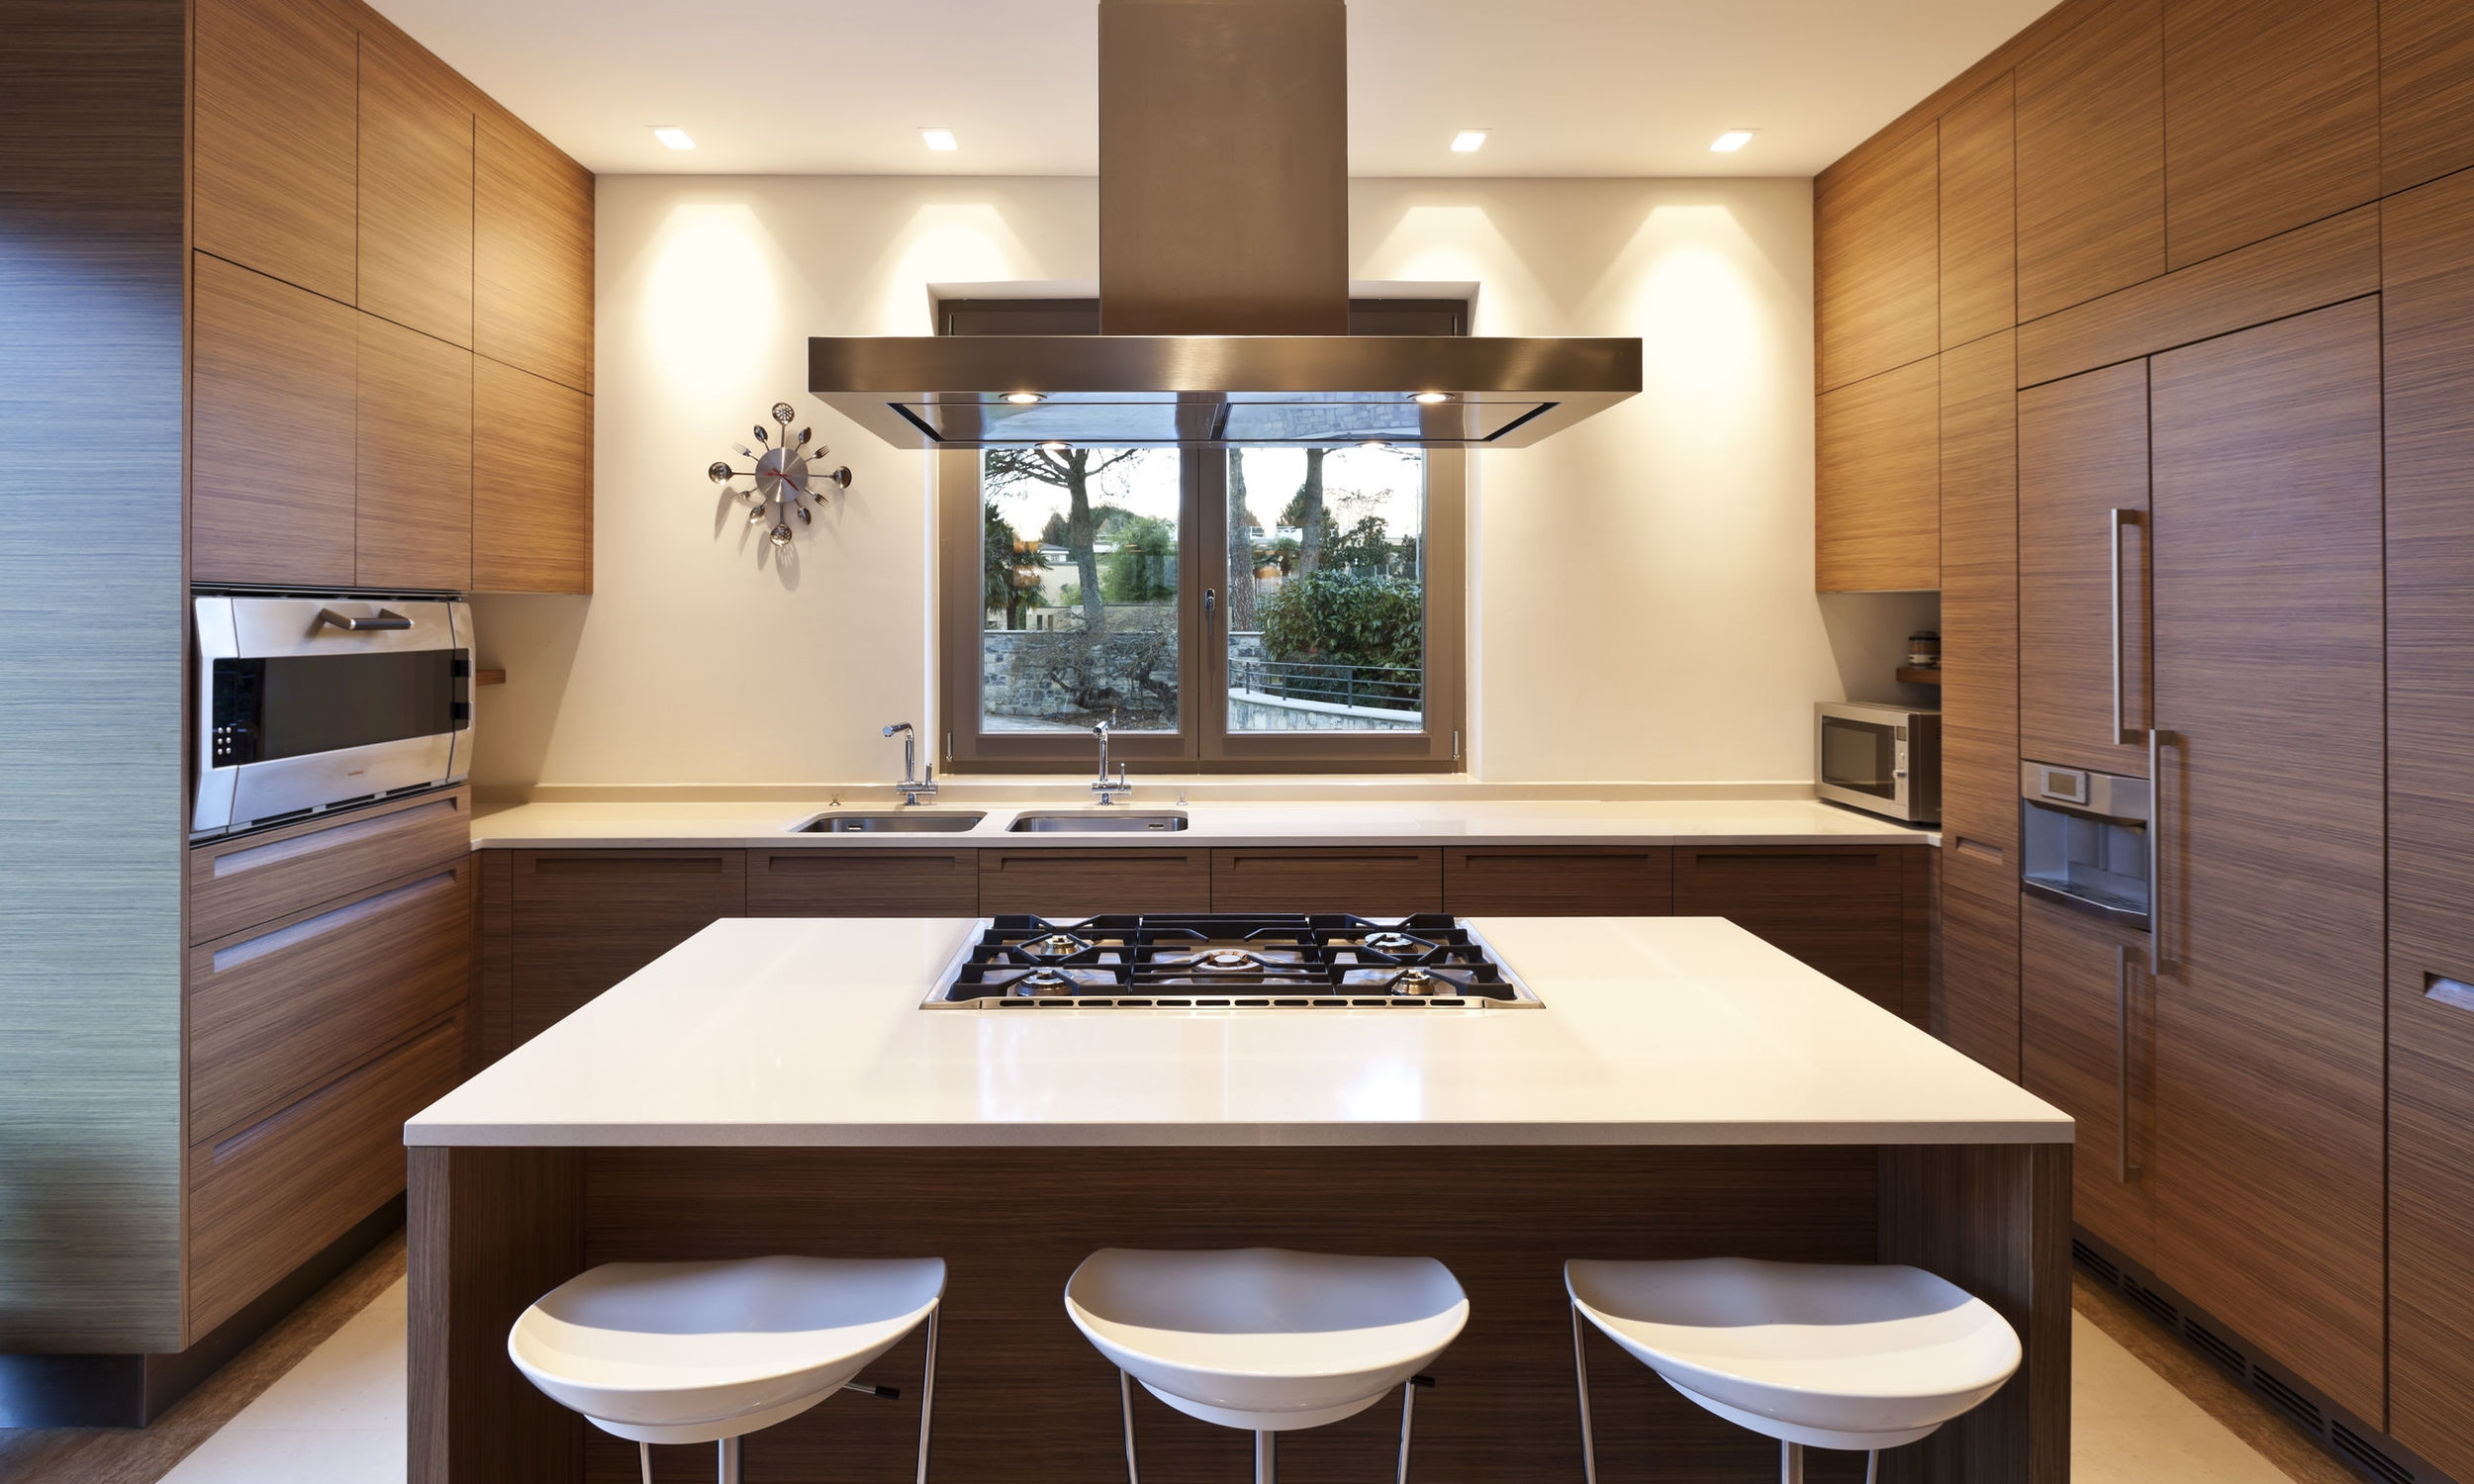 kitchen upgrades bar island trends and dollars hadar guibara the heart hub center of home is always has been likely will be it s most often first room we go to when coming